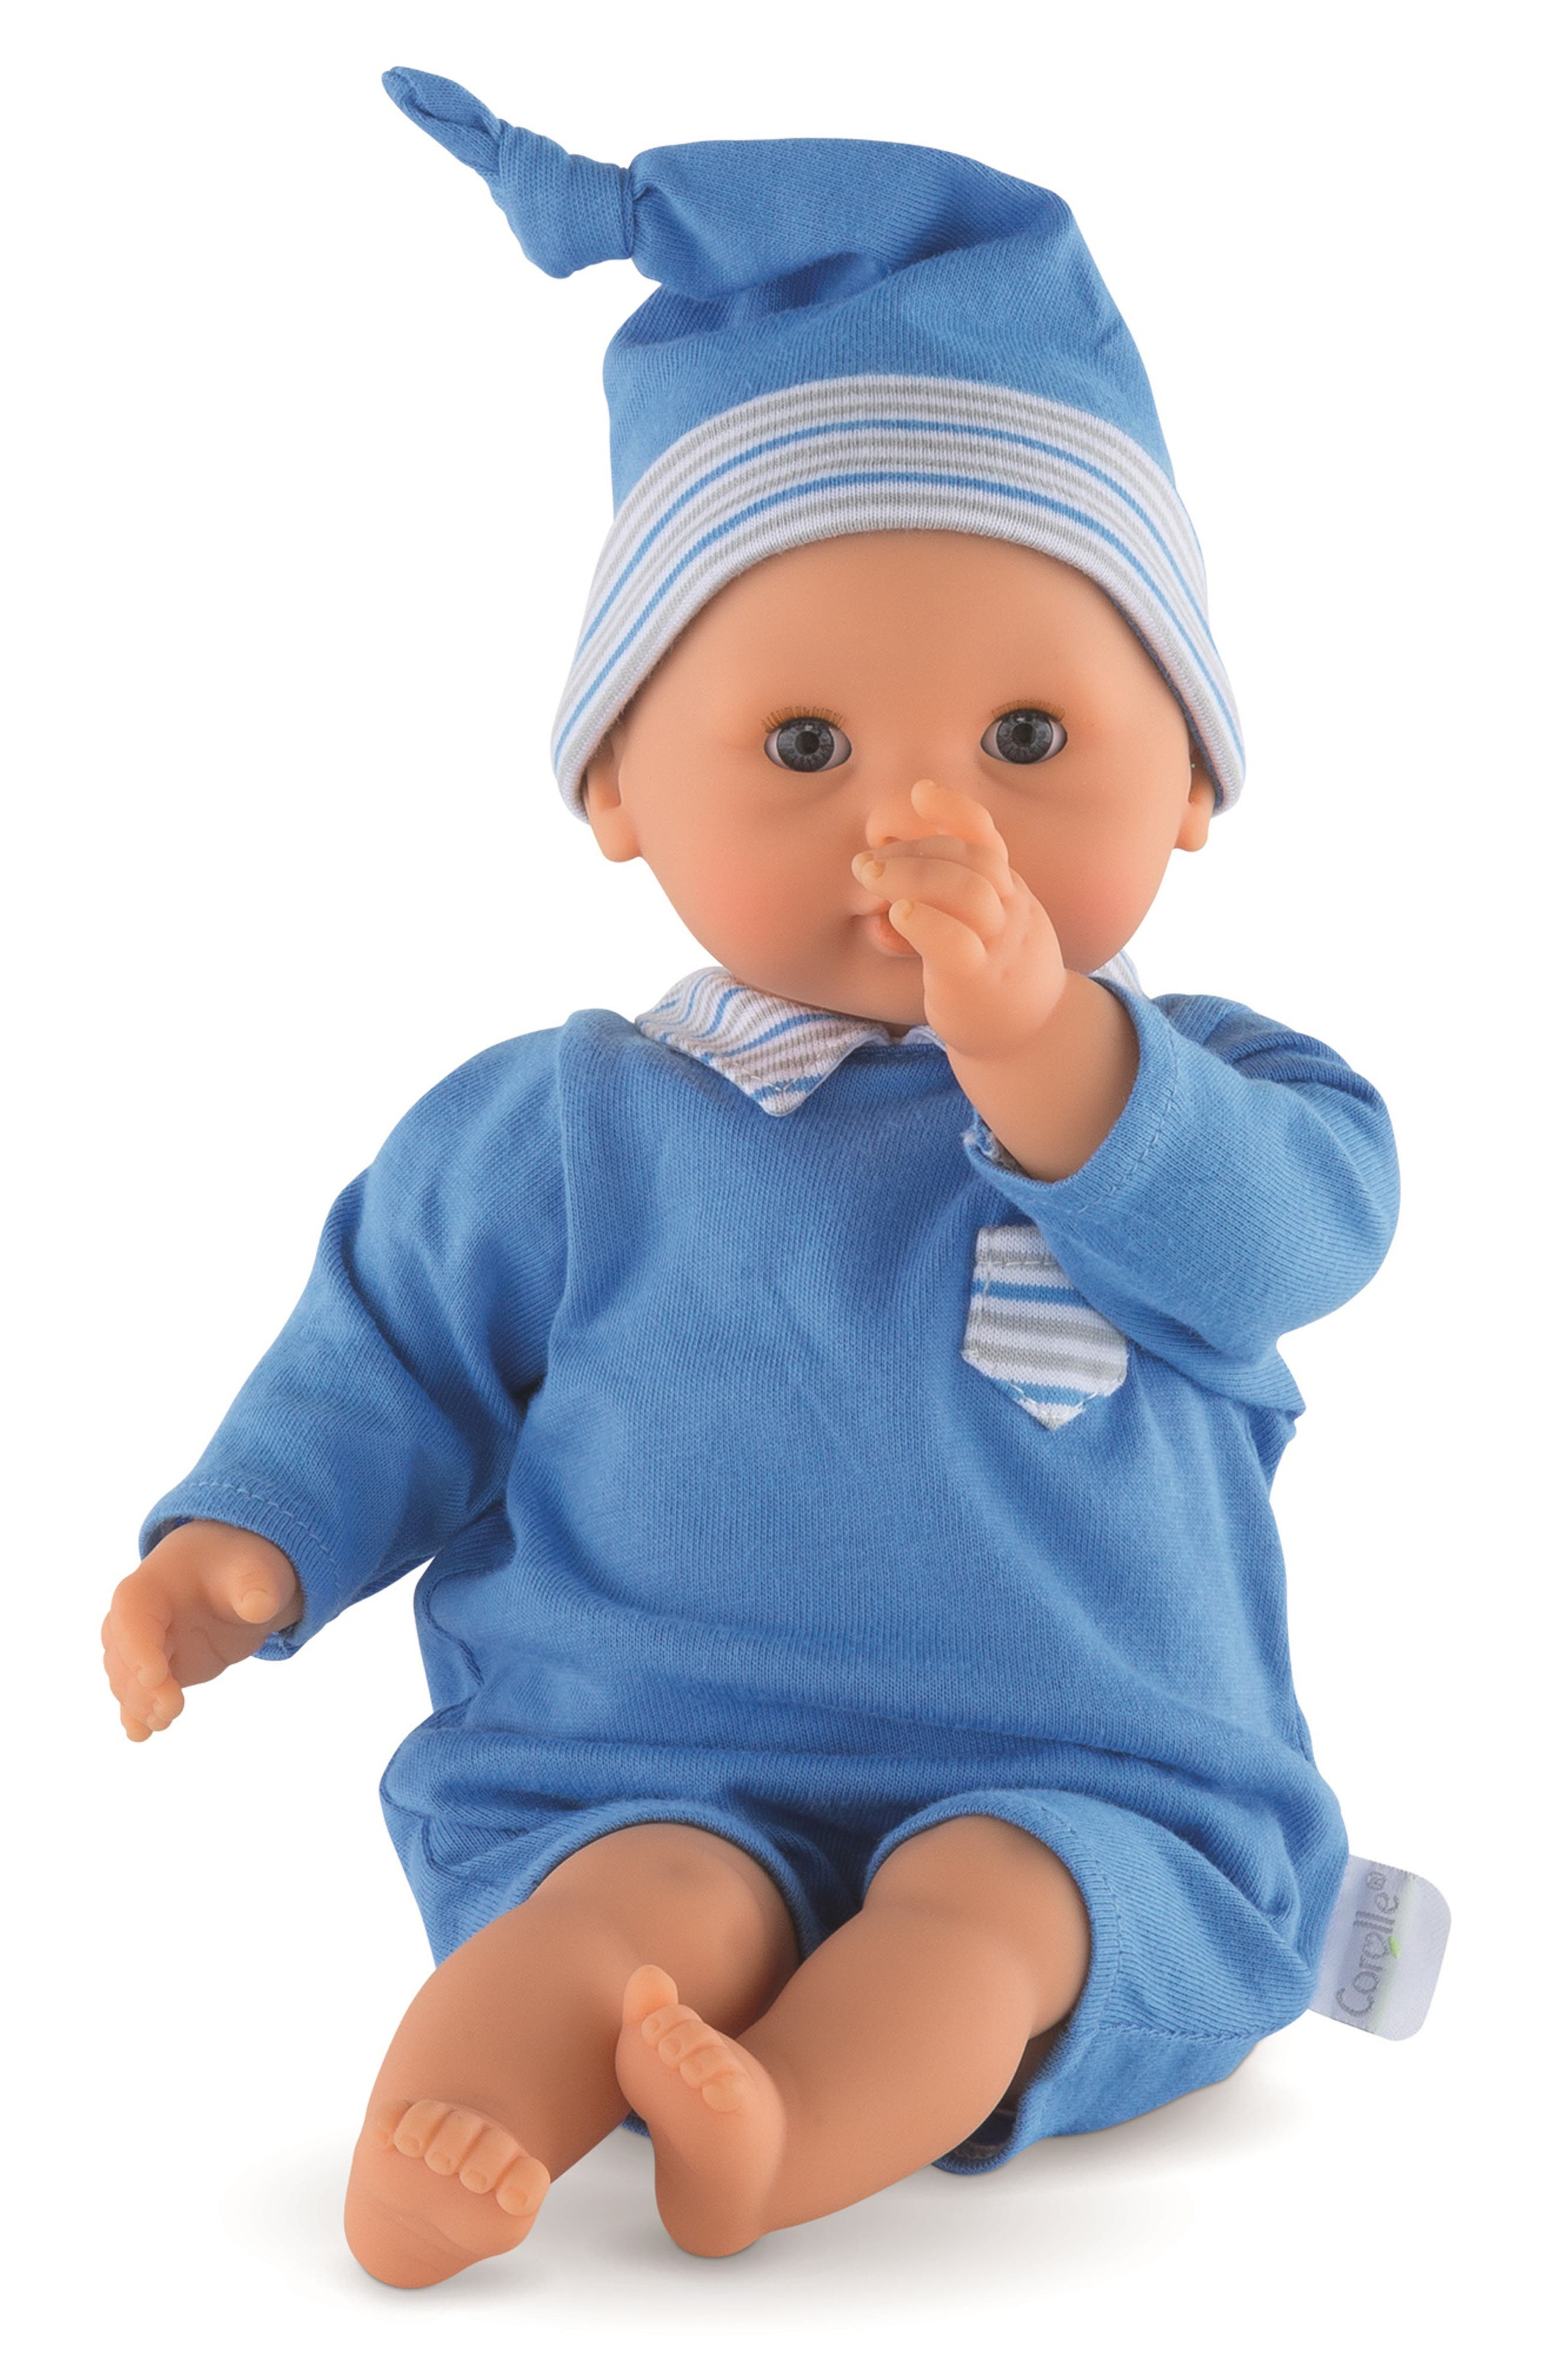 Toddler Boys Corolle Calin Boy Blue Baby Doll